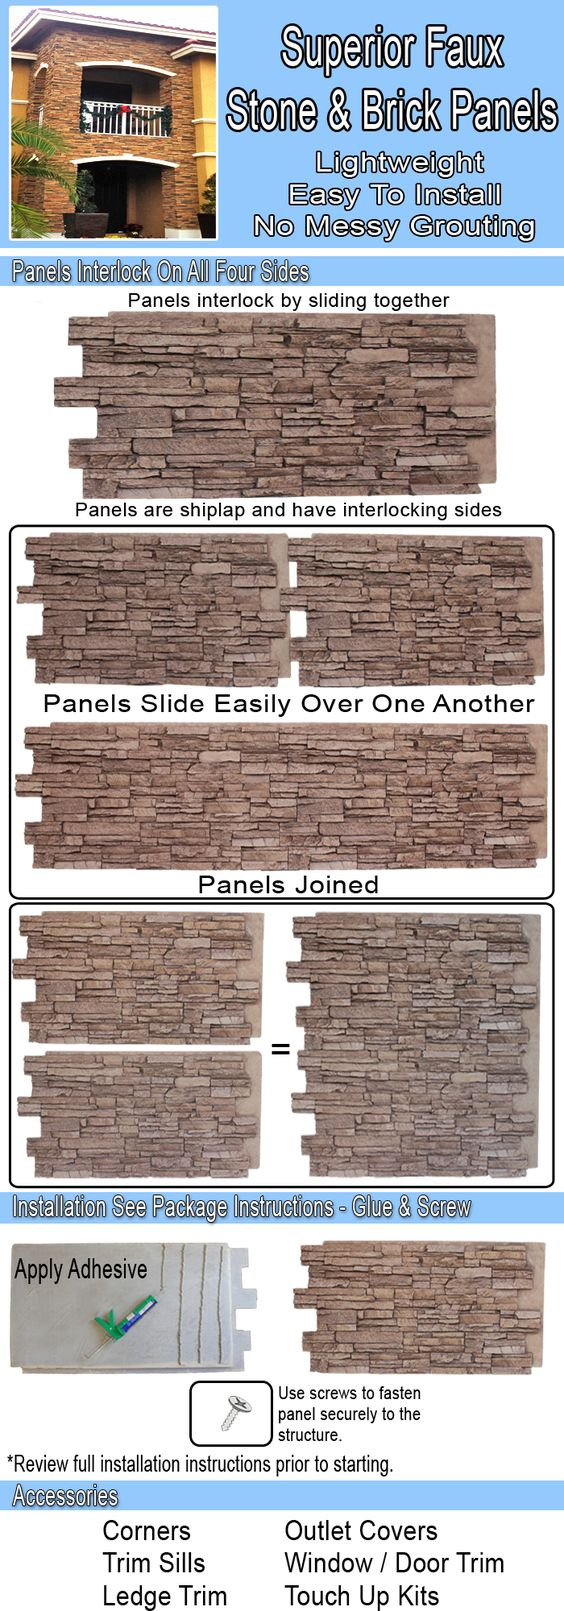 Superior Building Supplies Gray Rock 24 in. x 48 in. x 1-1/4 in. Faux Grand Heritage Stack Stone Panel - HD-COL2448-GR at The Home Depot